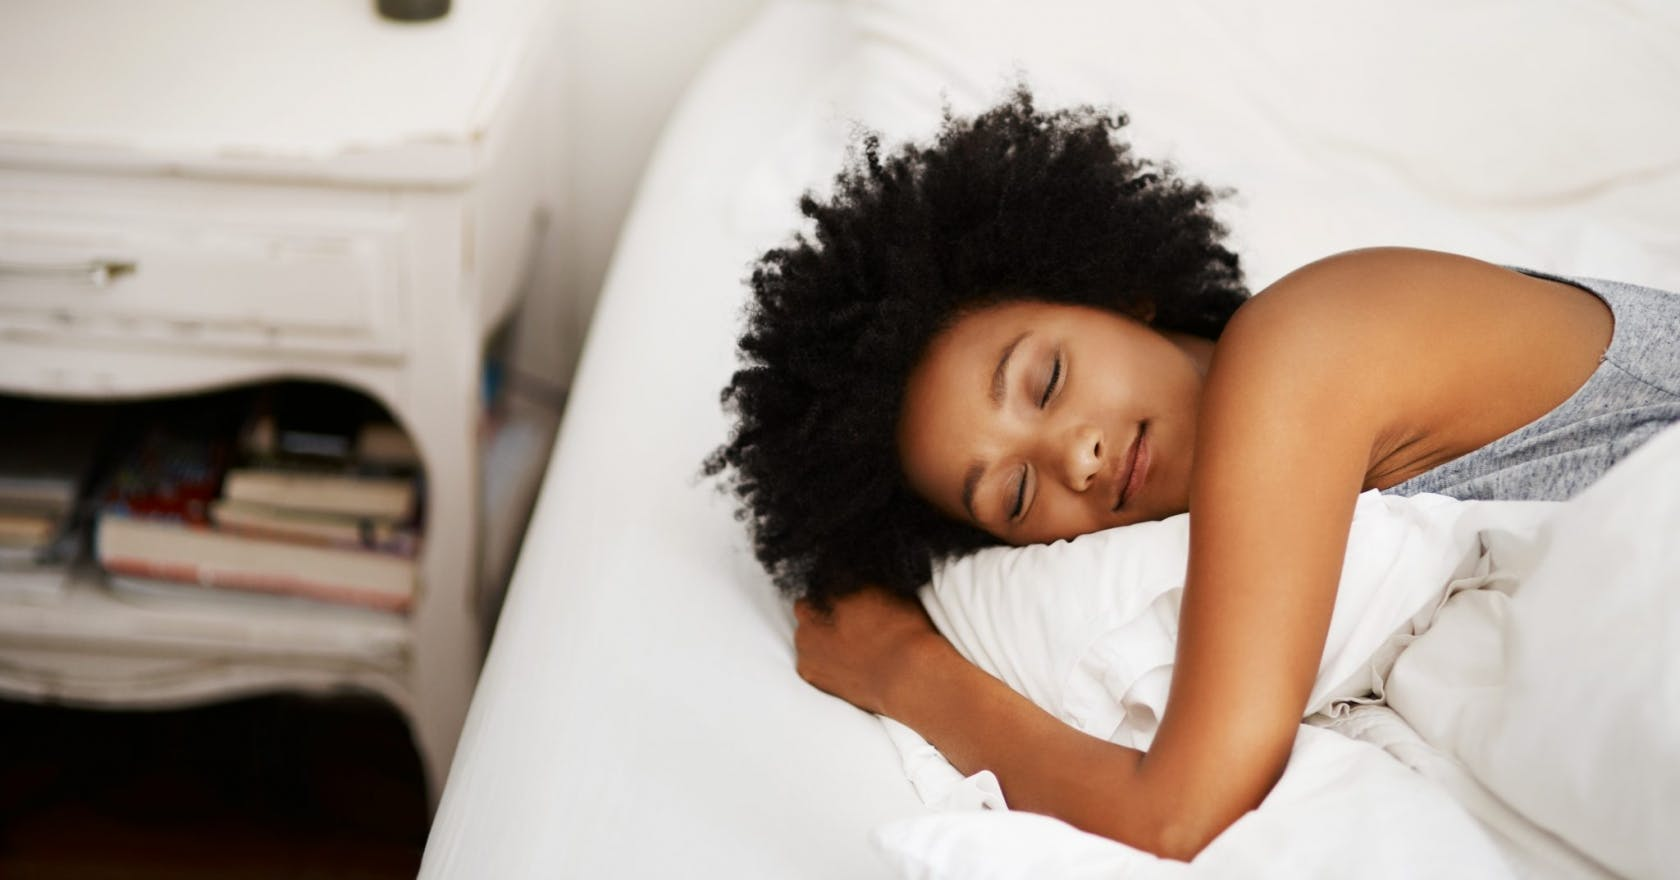 Back to the 9-5? Here's how to get your sleep schedule ready for work